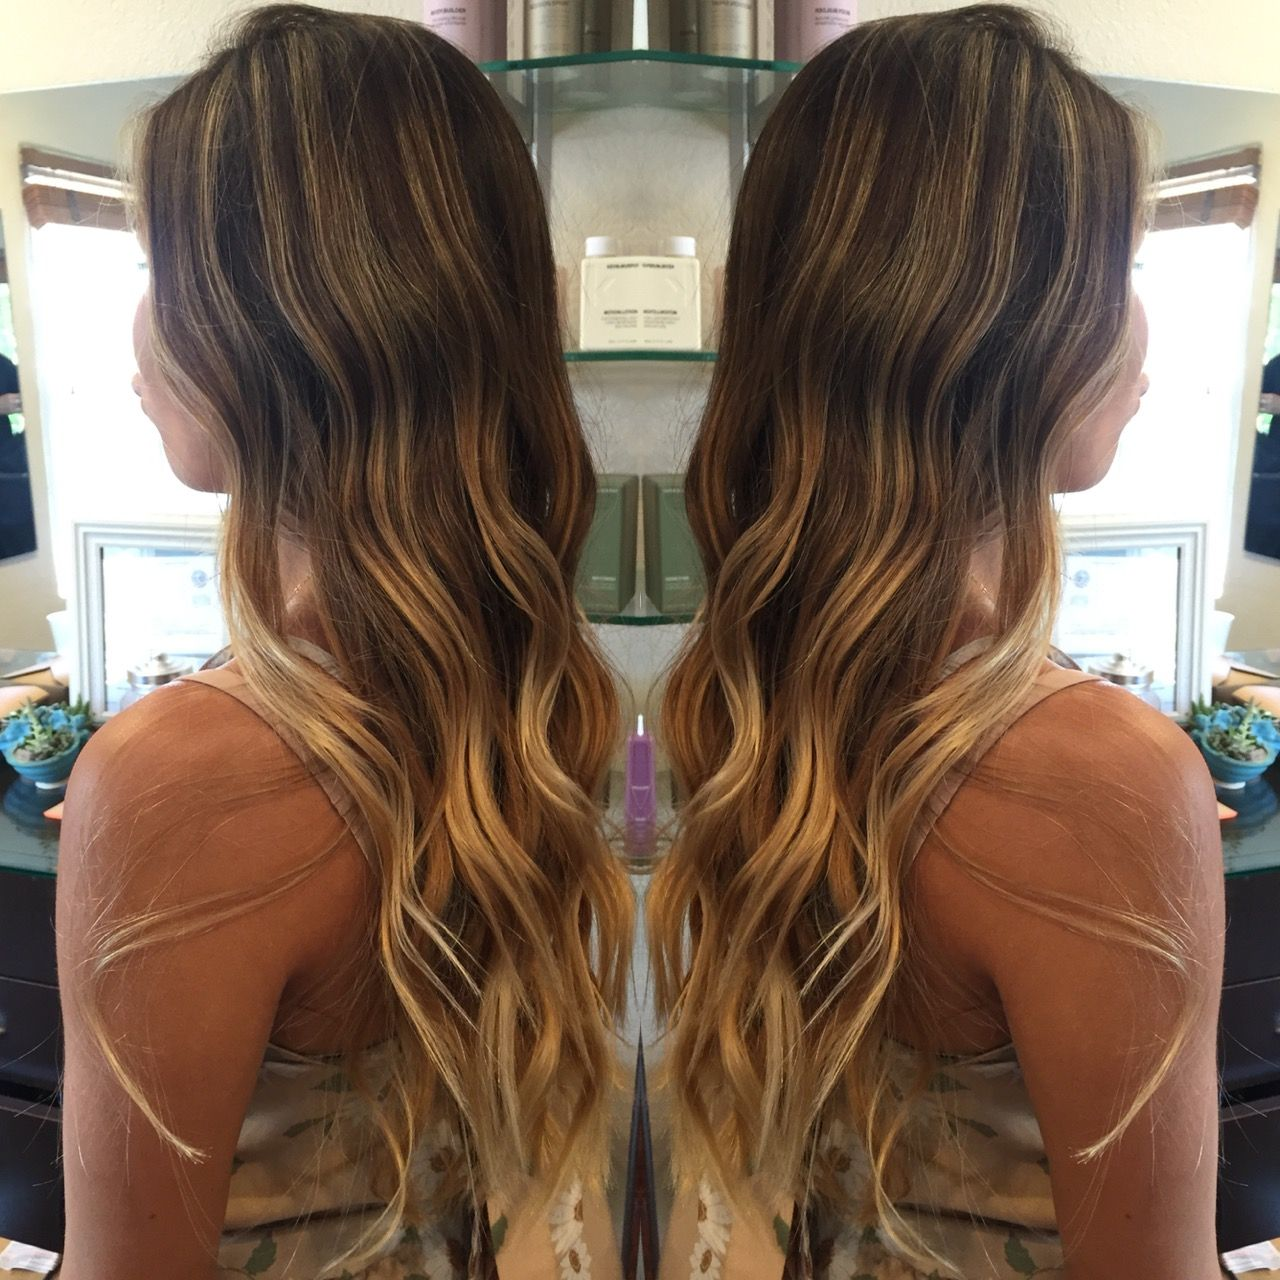 Gave This Beaut Surfer Girl Haircolor Hairbydanaduffy Haircolor